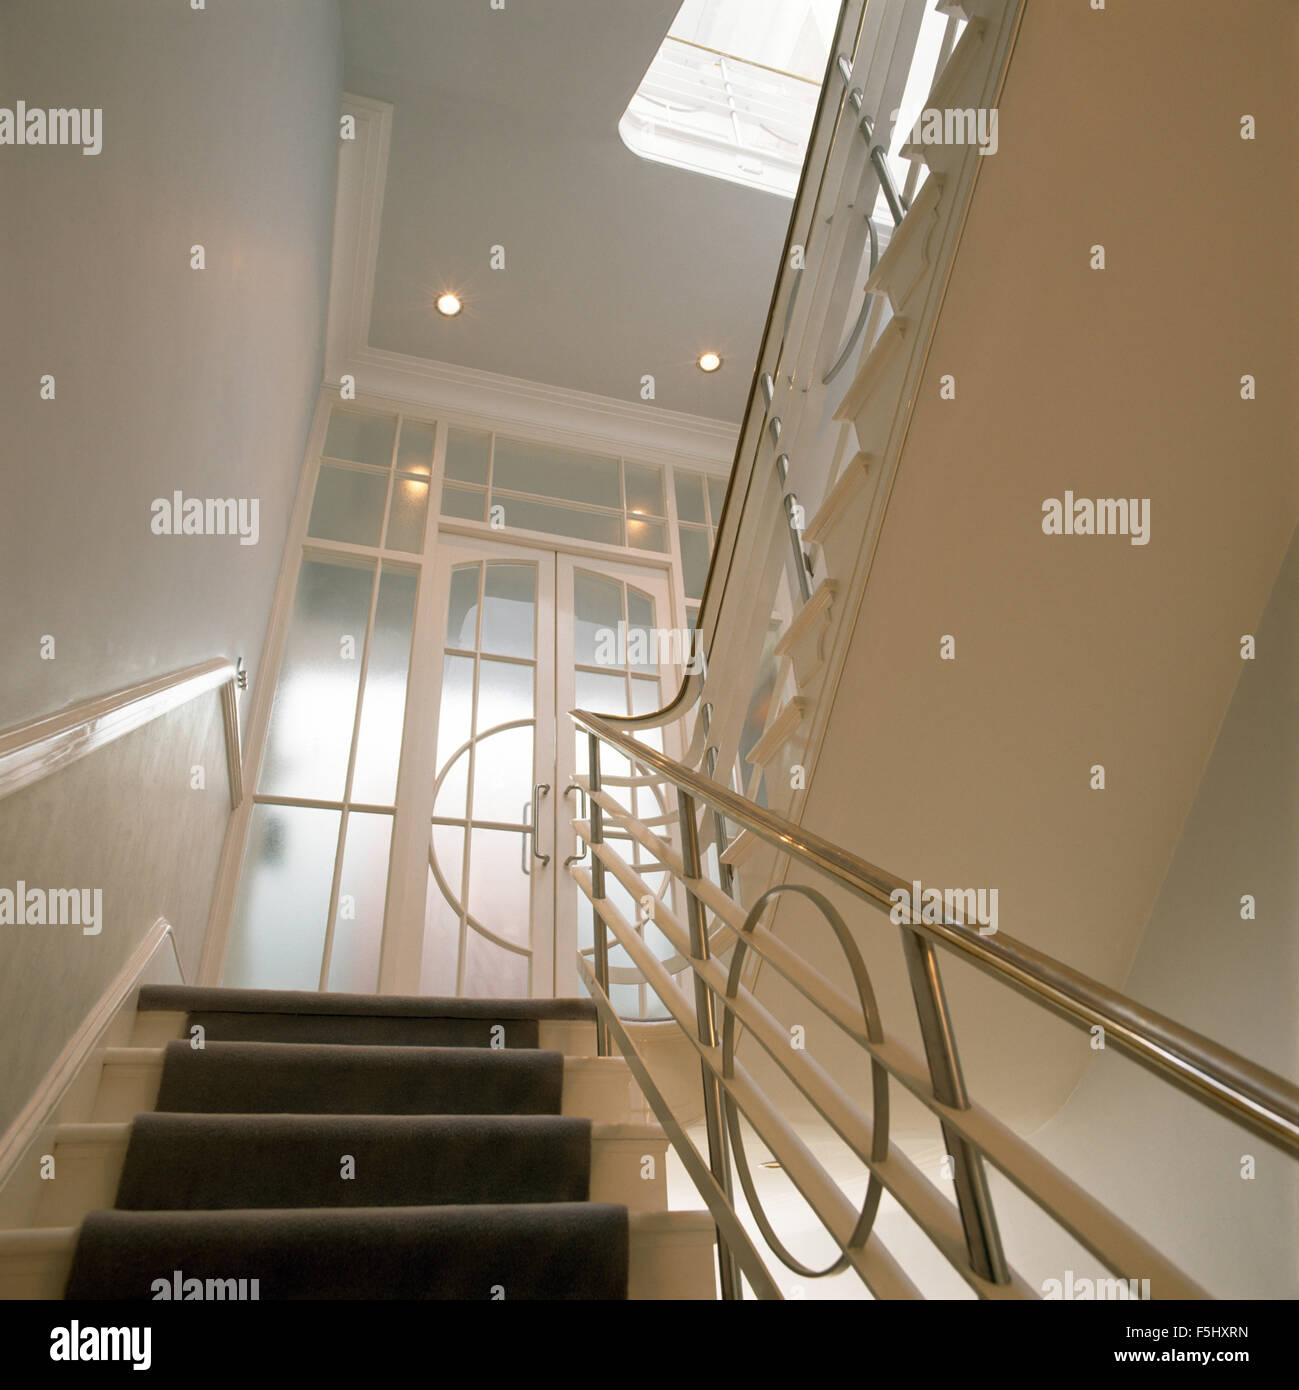 Chrome banisters on thirties staircase - Stock Image